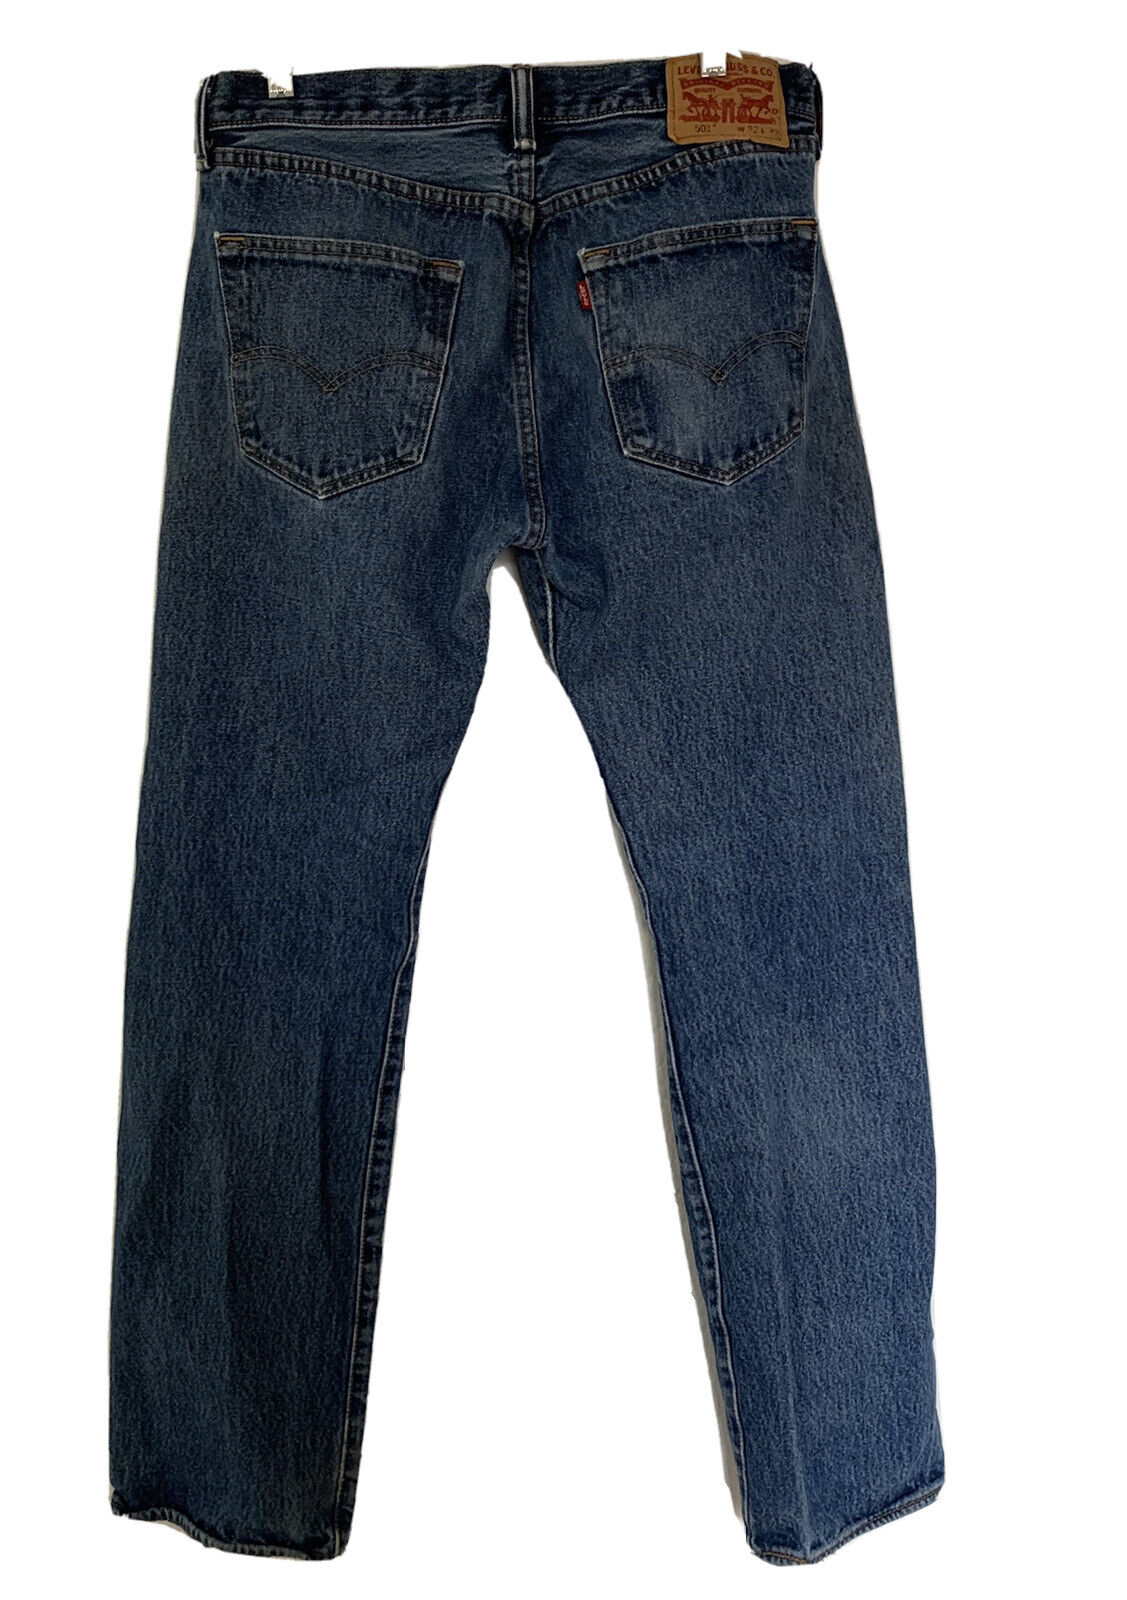 Vintage Levi's 501 Button Fly Distressed Jeans Me… - image 6